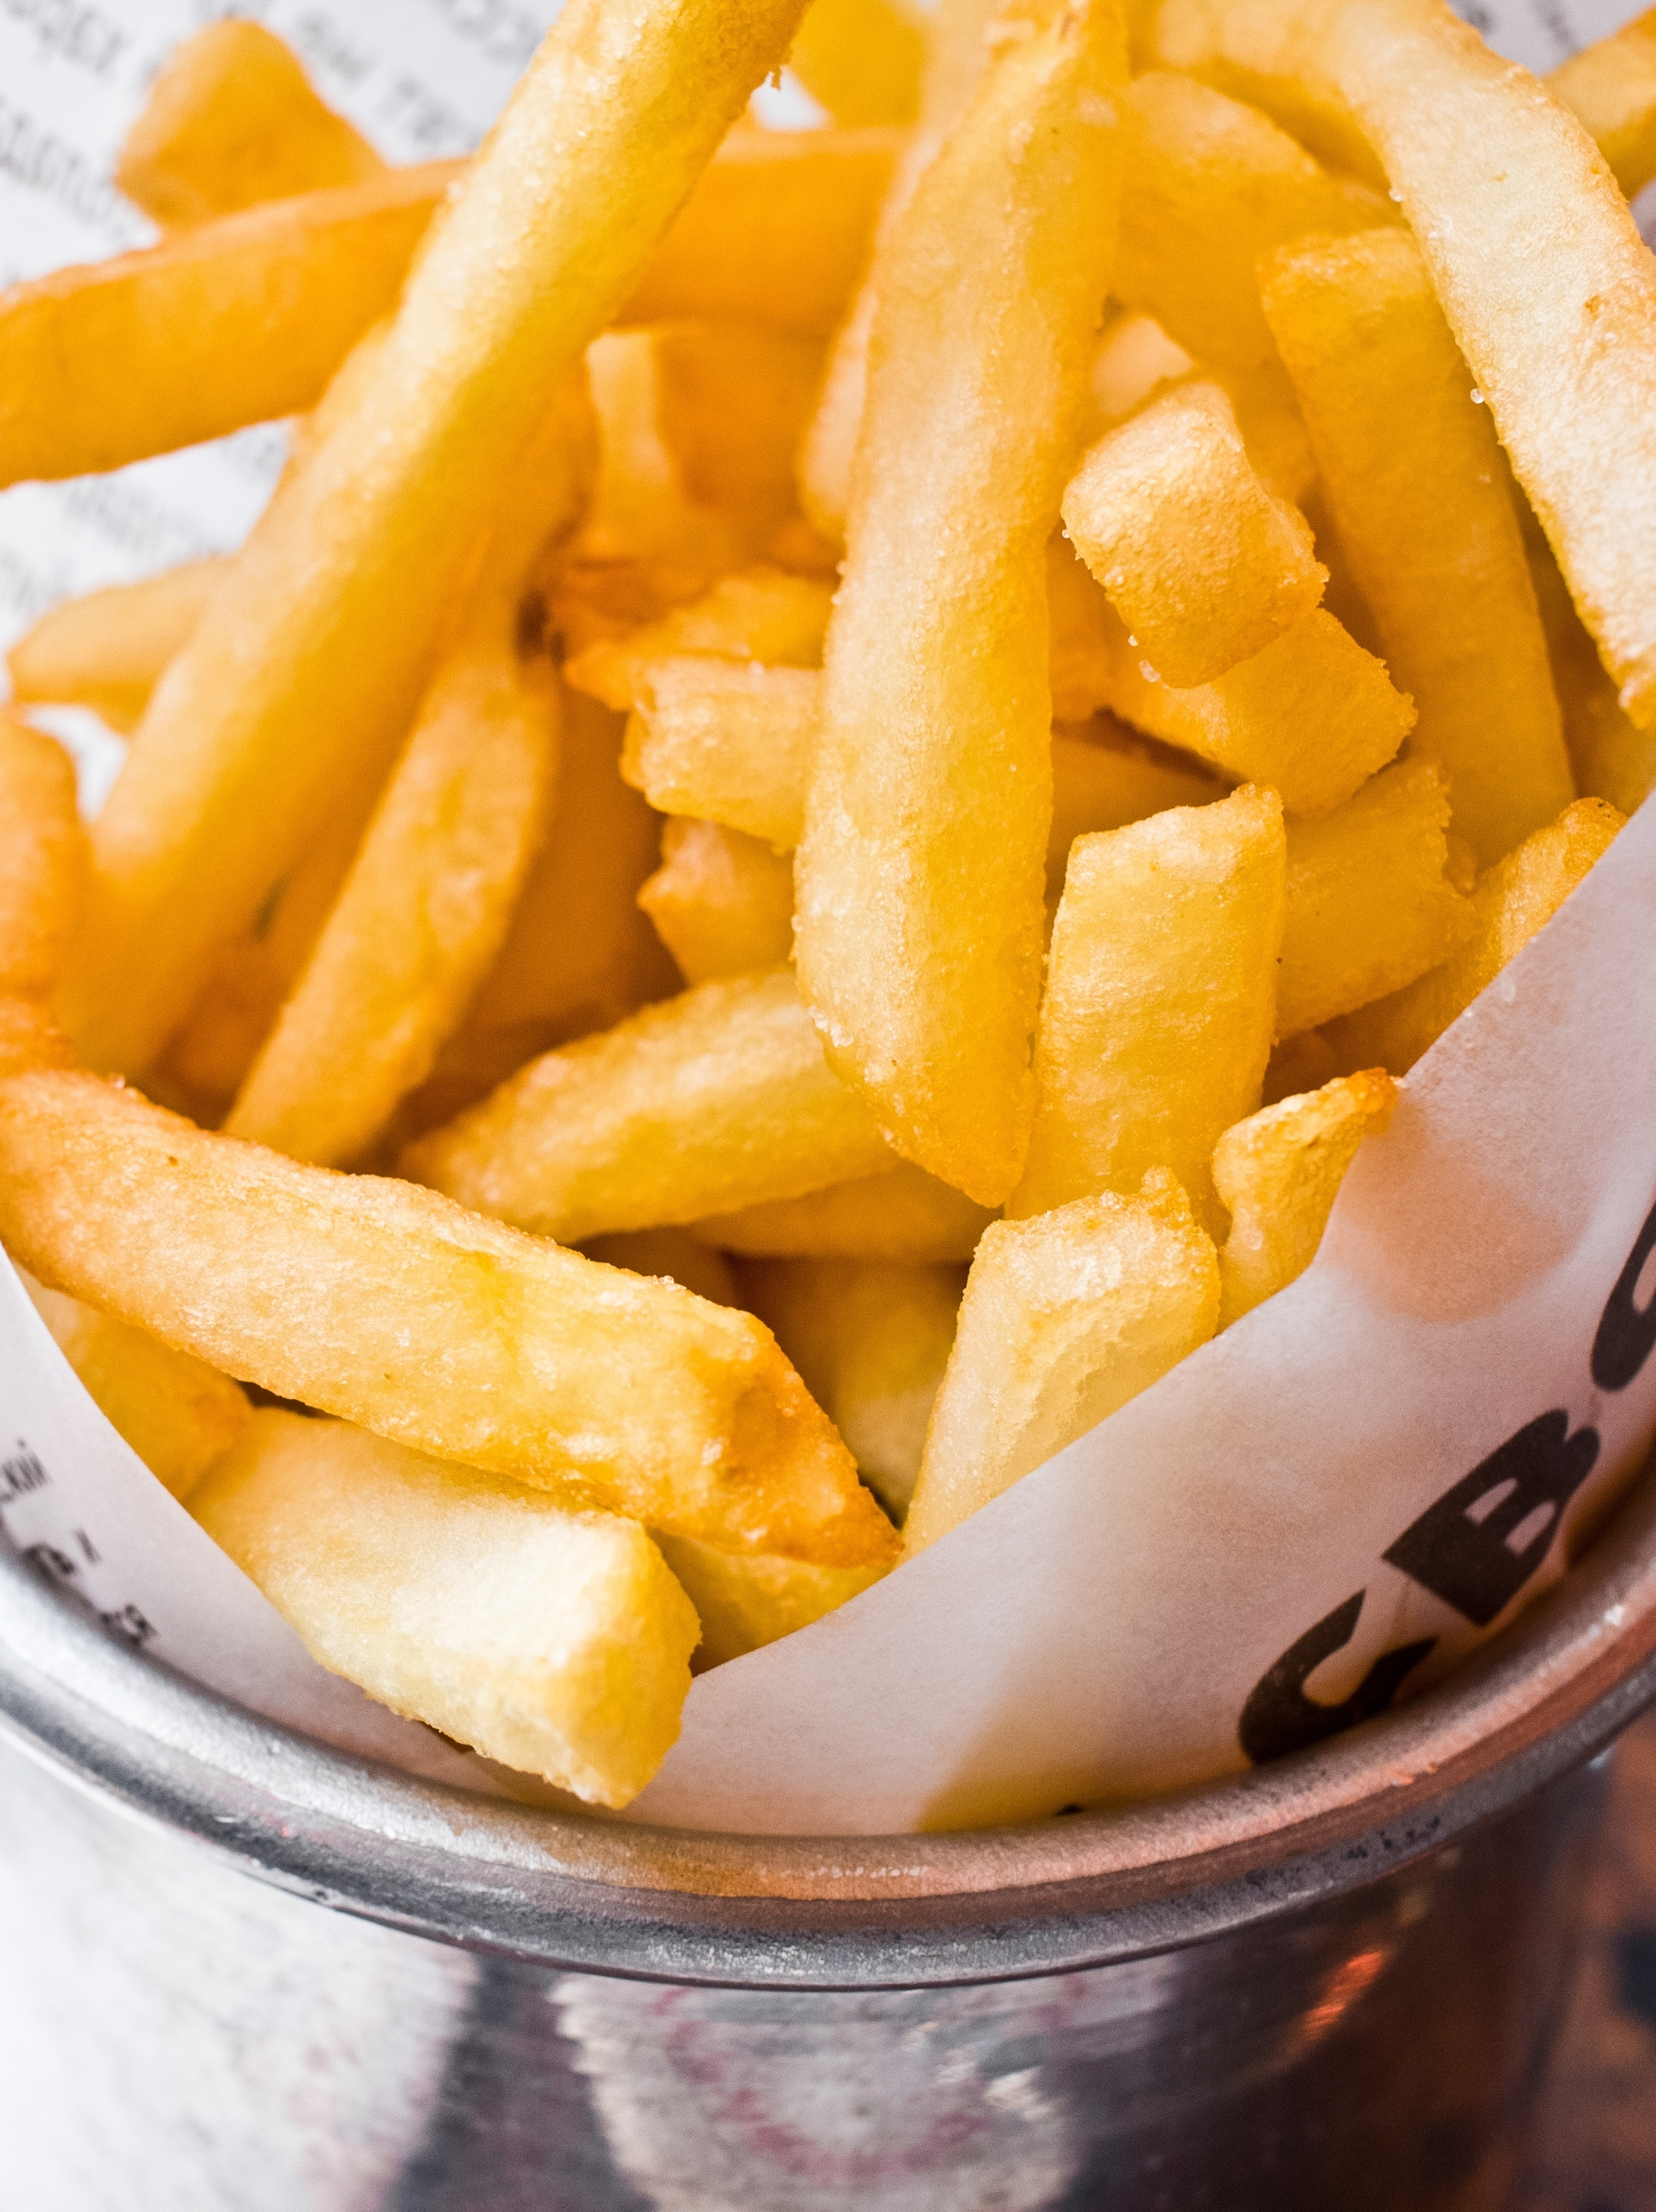 All of the french fries you can handle